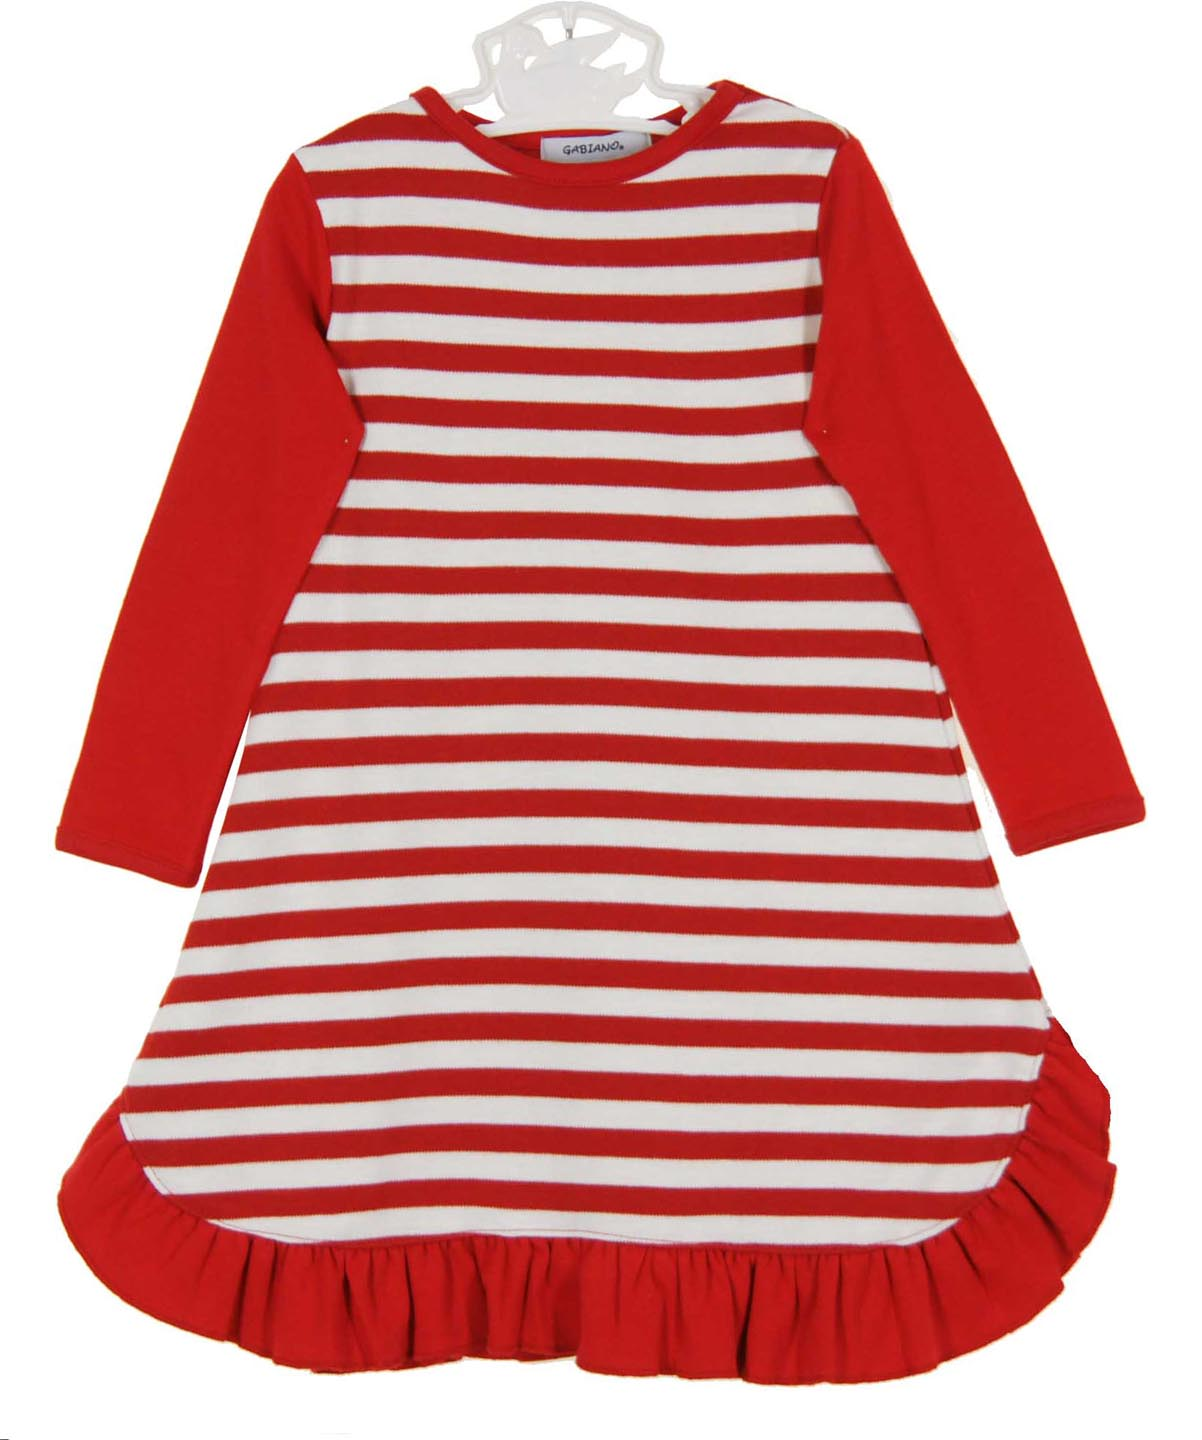 red striped nightgown for baby girls,Christmas nightgown for baby ...